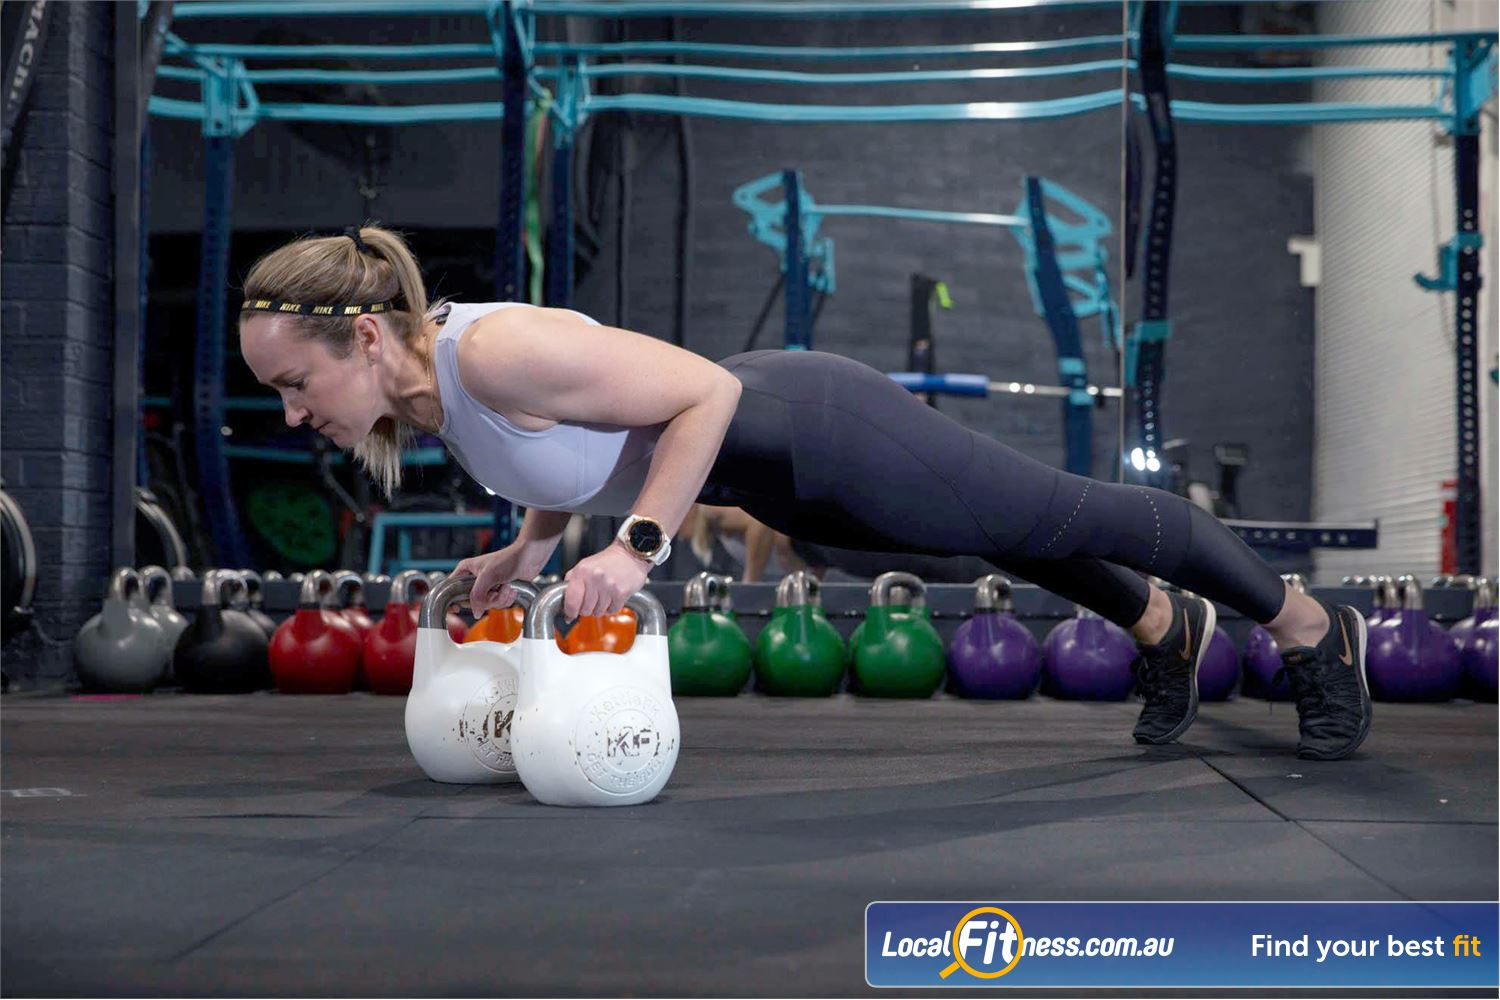 KettleFit Near St Kilda East KettleFit Windsor gym delivers a different workout every day.